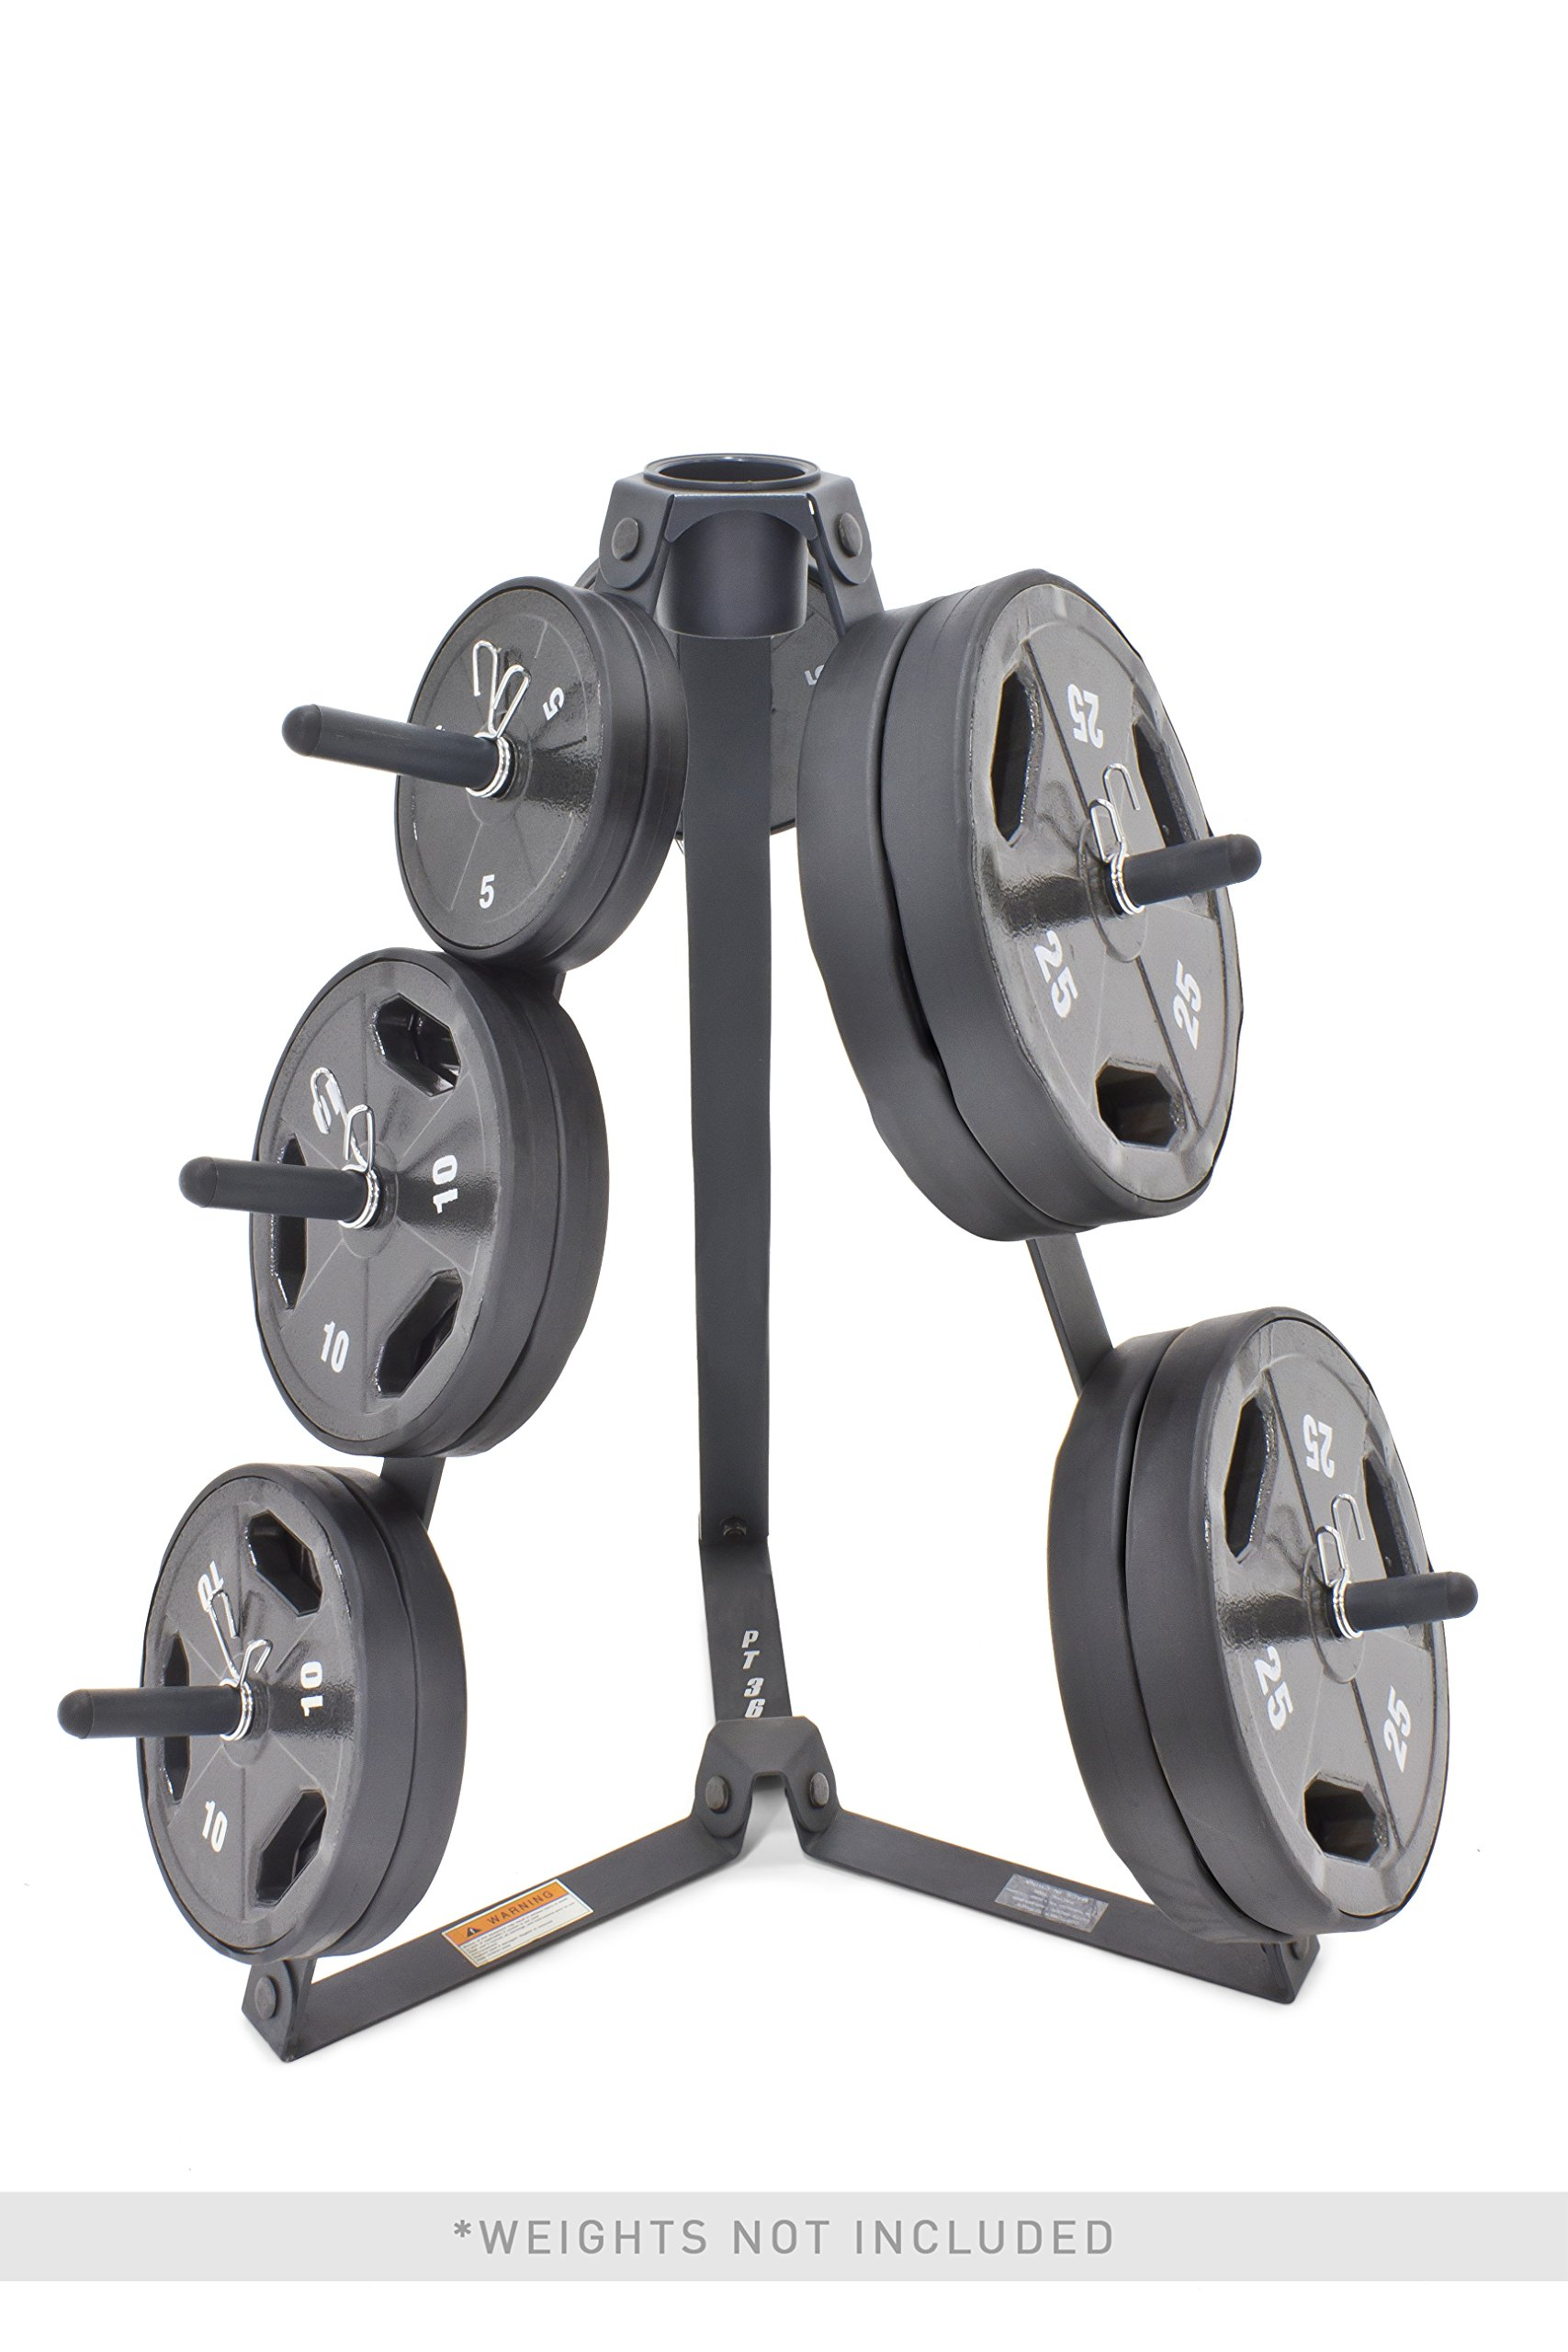 Marcy Plate Tree for Standard Size Weight Plates/Storage Rack for Exercise Weights PT-36 by Marcy